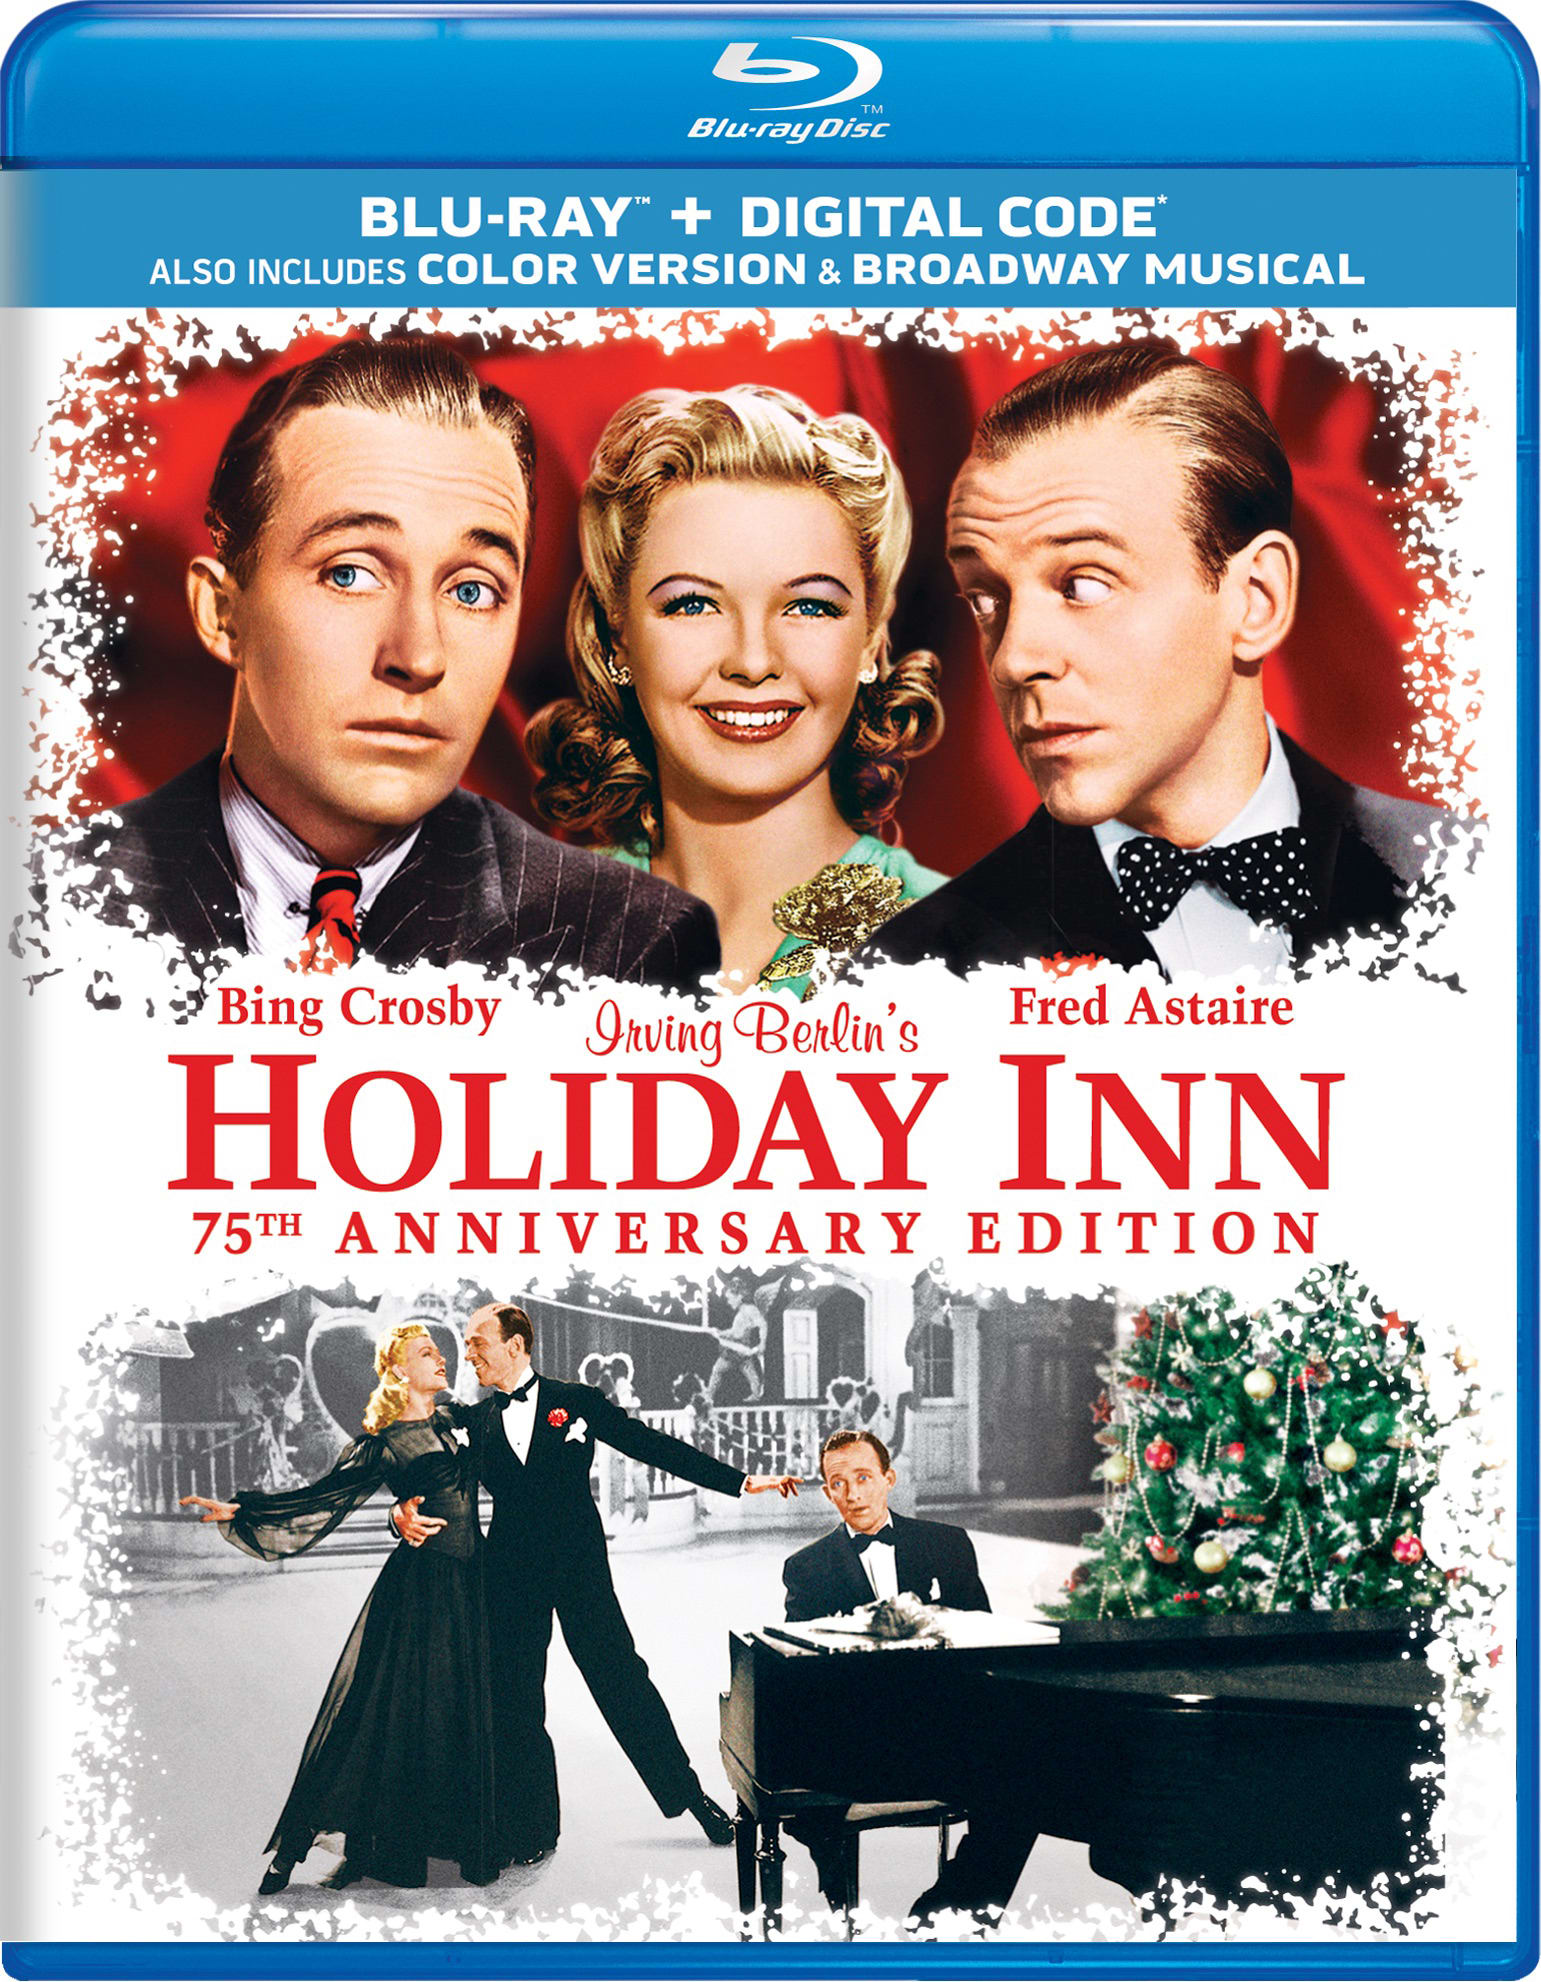 Holiday Inn (75th Anniversary Edition) [Blu-ray]